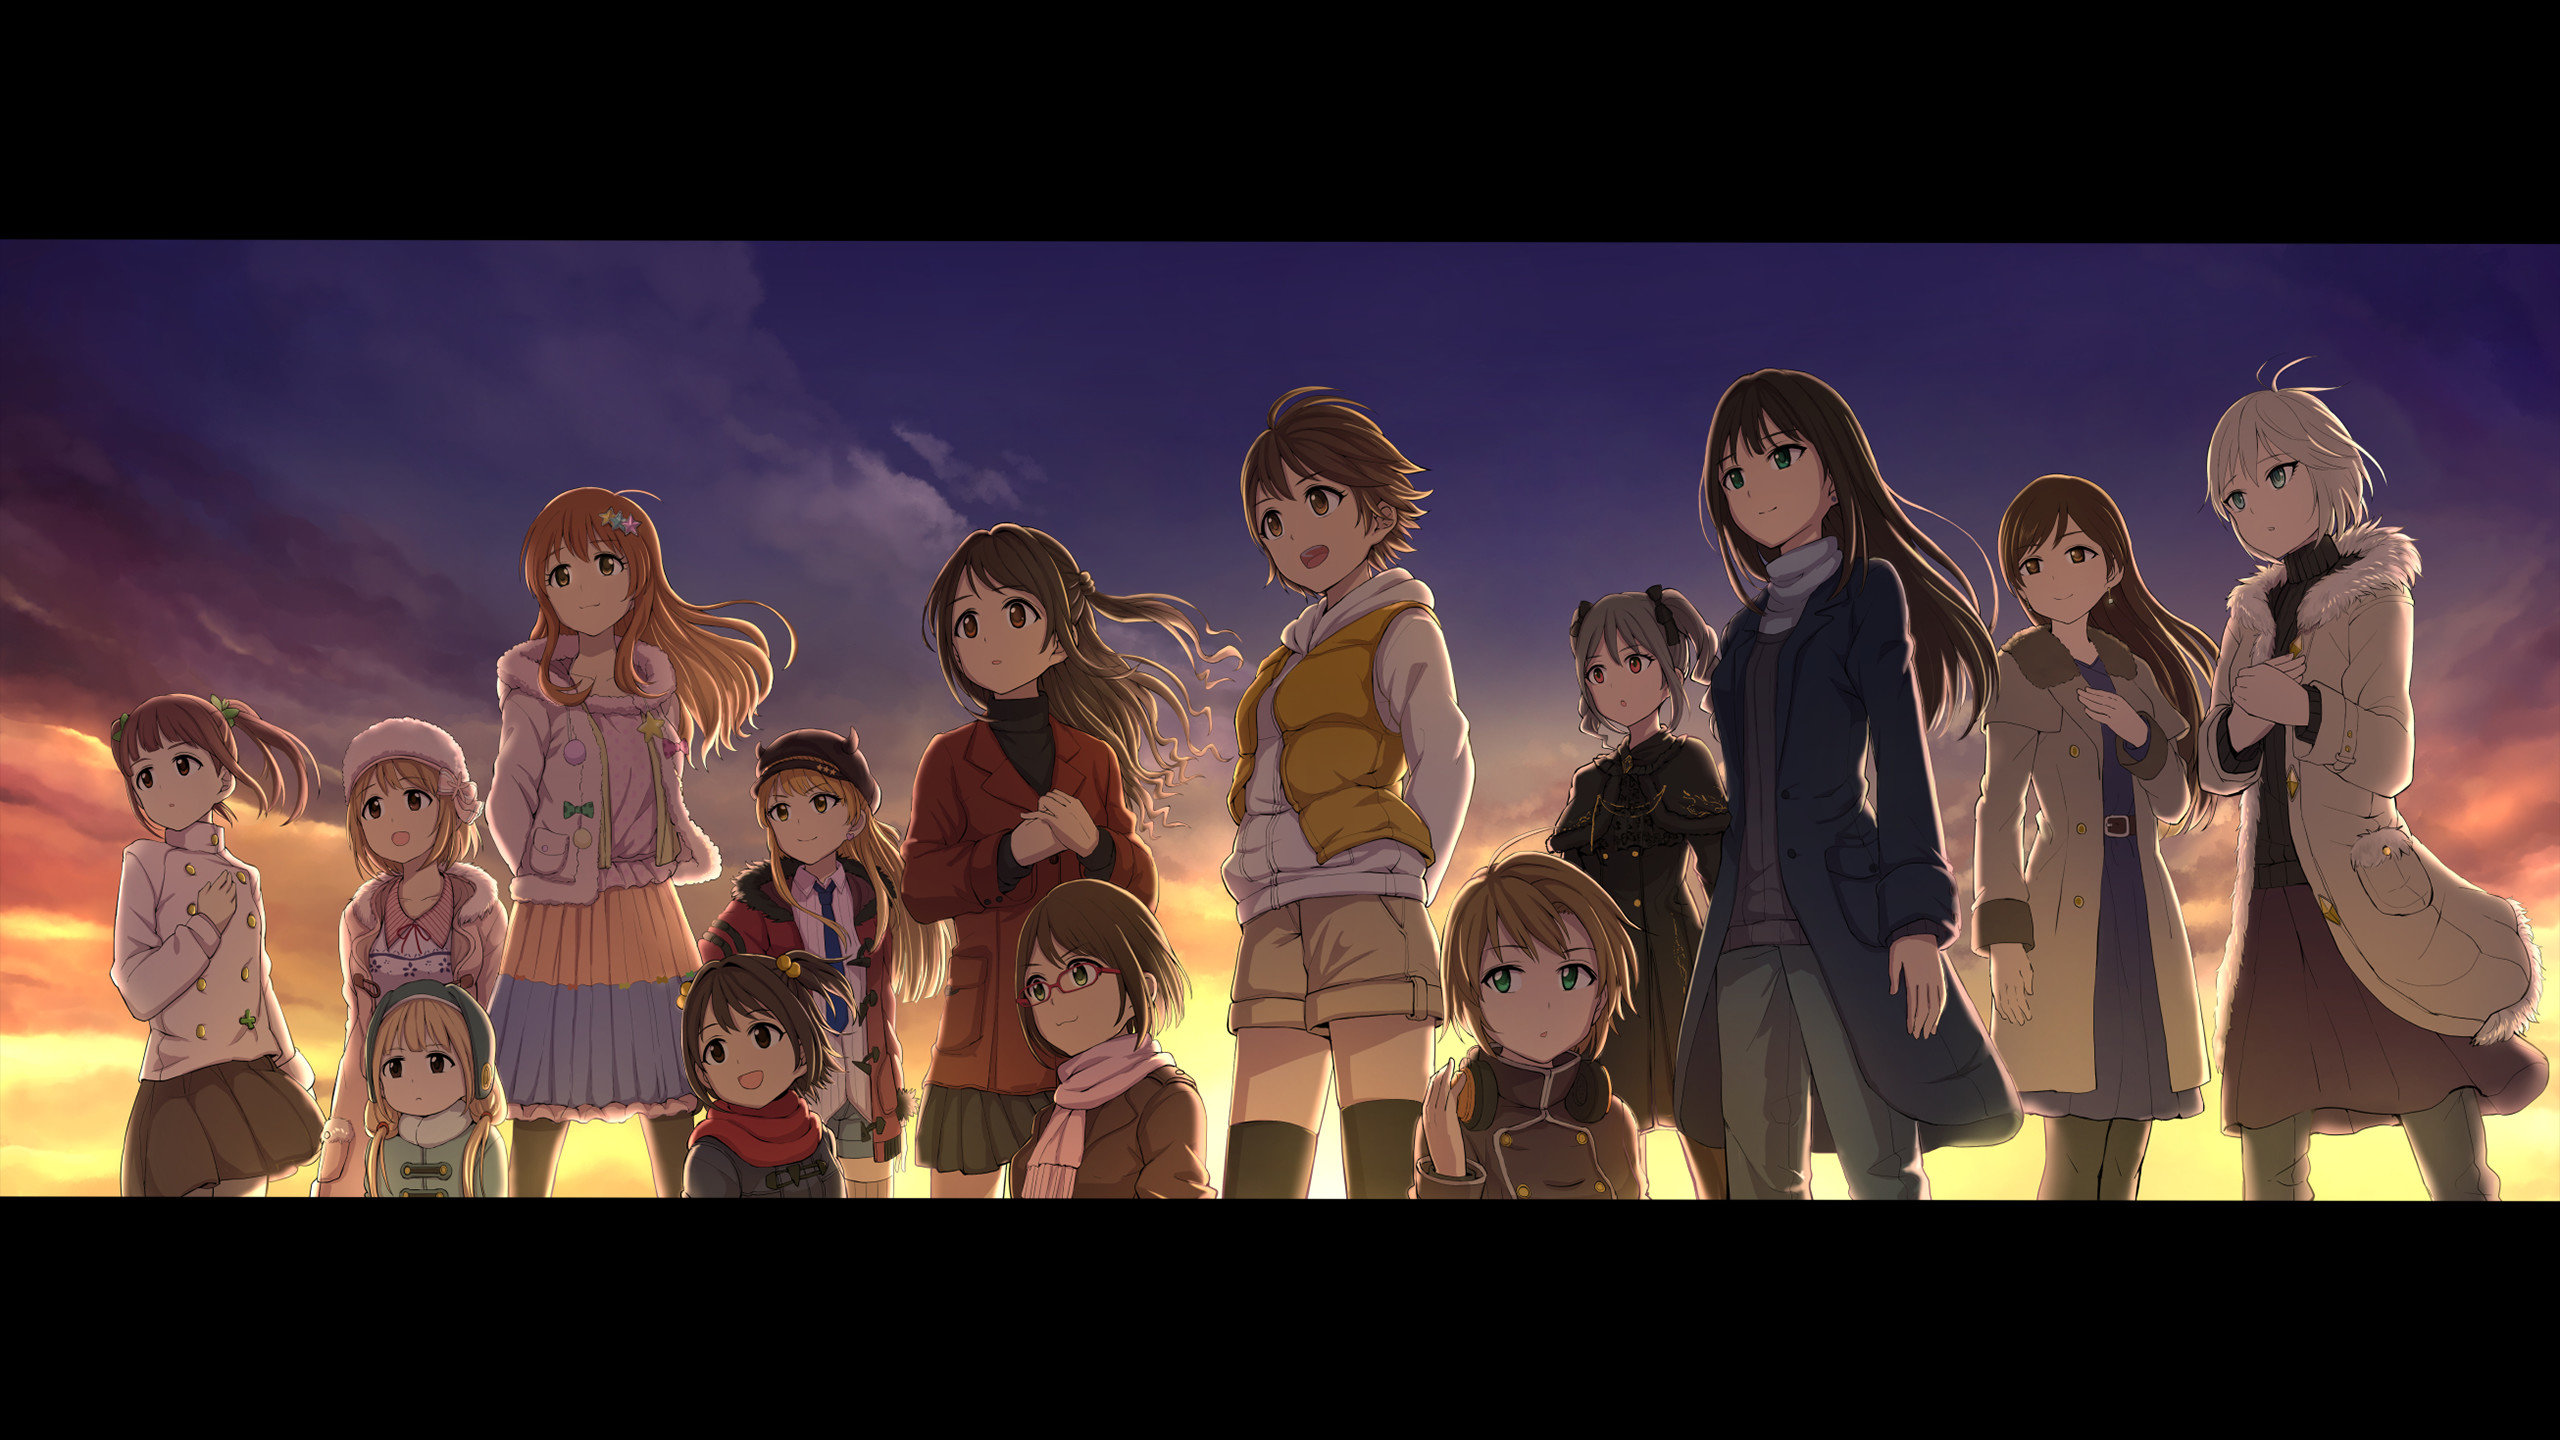 Download hd 2560x1440 IDOLM@STER Cinderella Girls PC wallpaper ID:446831 for free